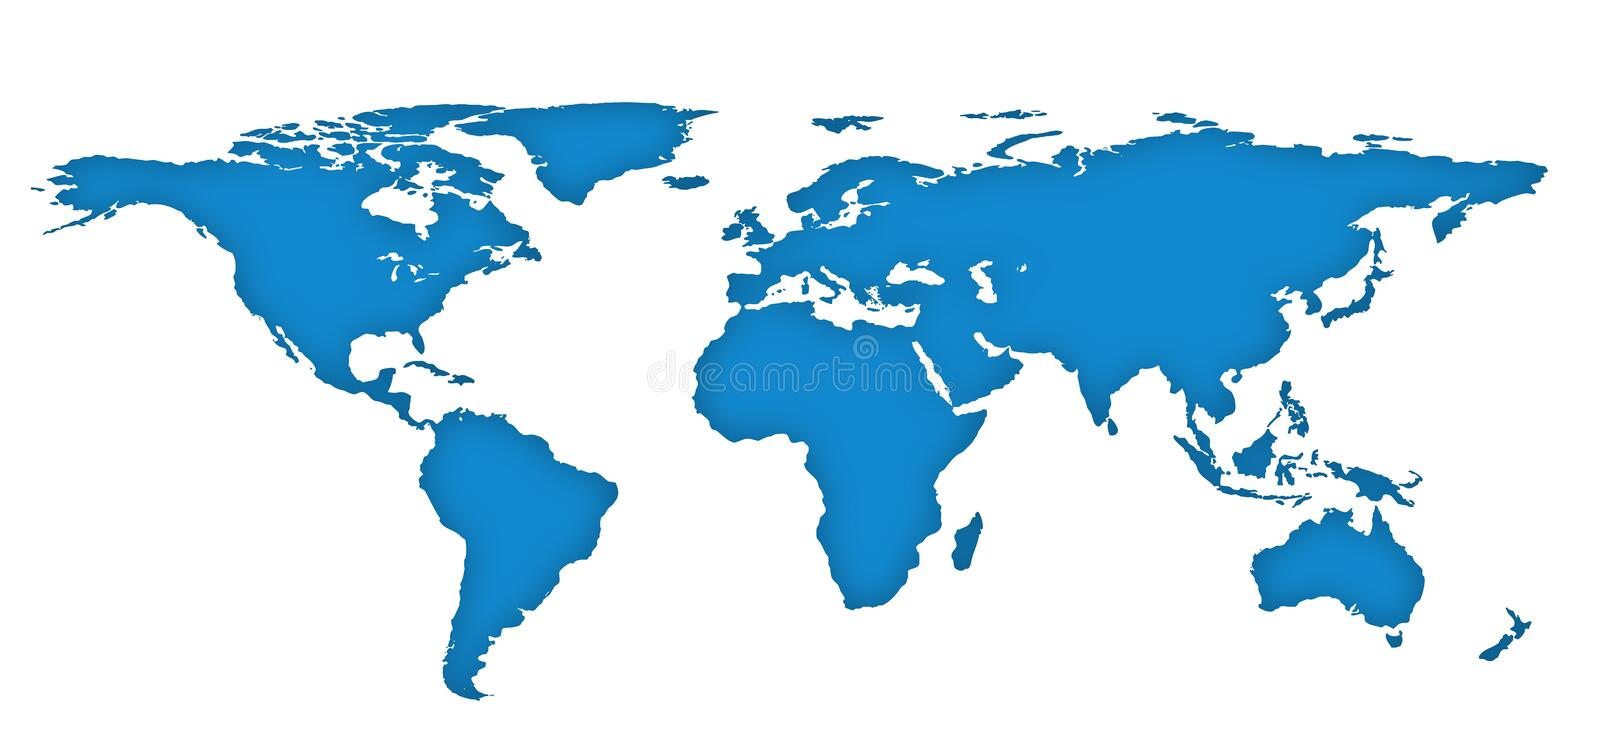 Blue drawing outline world map isolated on white background stock download blue drawing outline world map isolated on white background stock illustration illustration of gumiabroncs Gallery